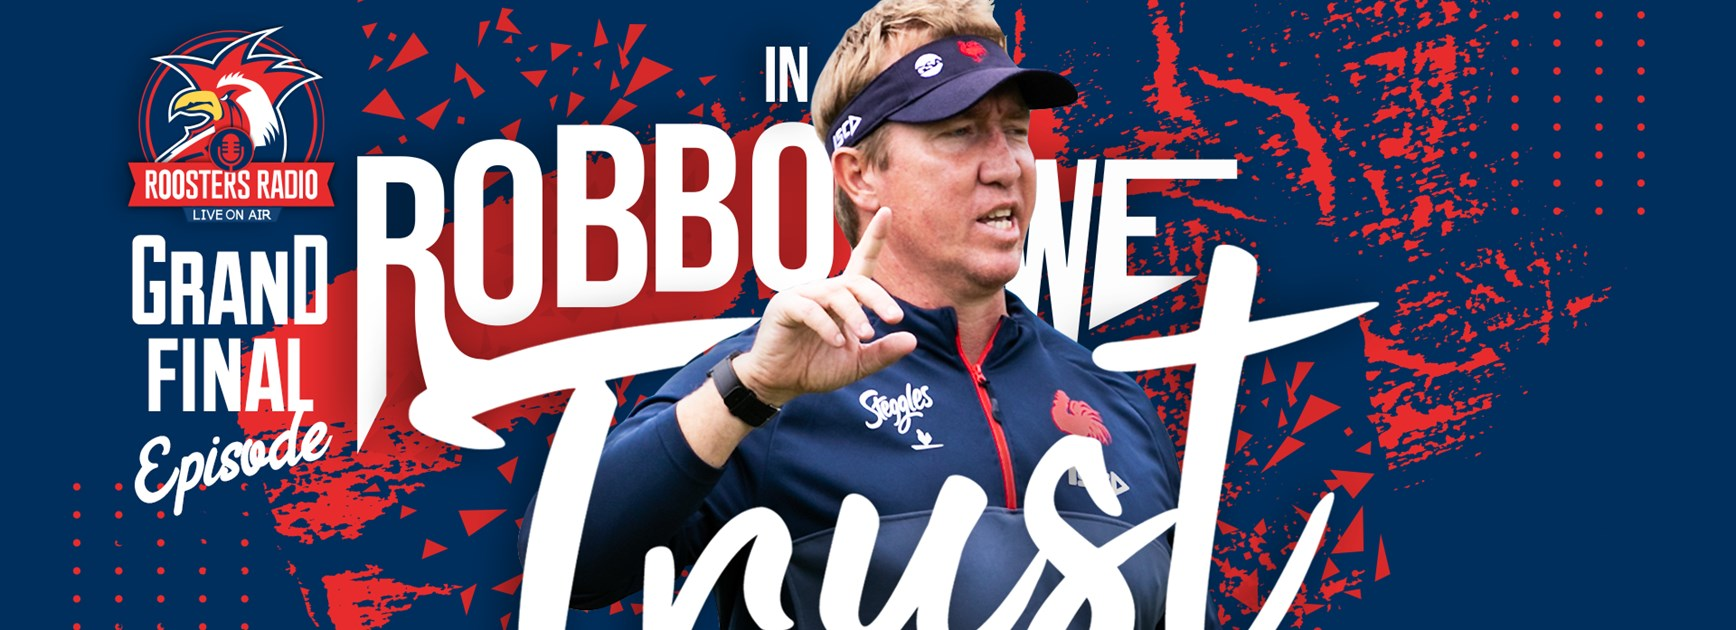 Roosters Radio | Trent Robinson